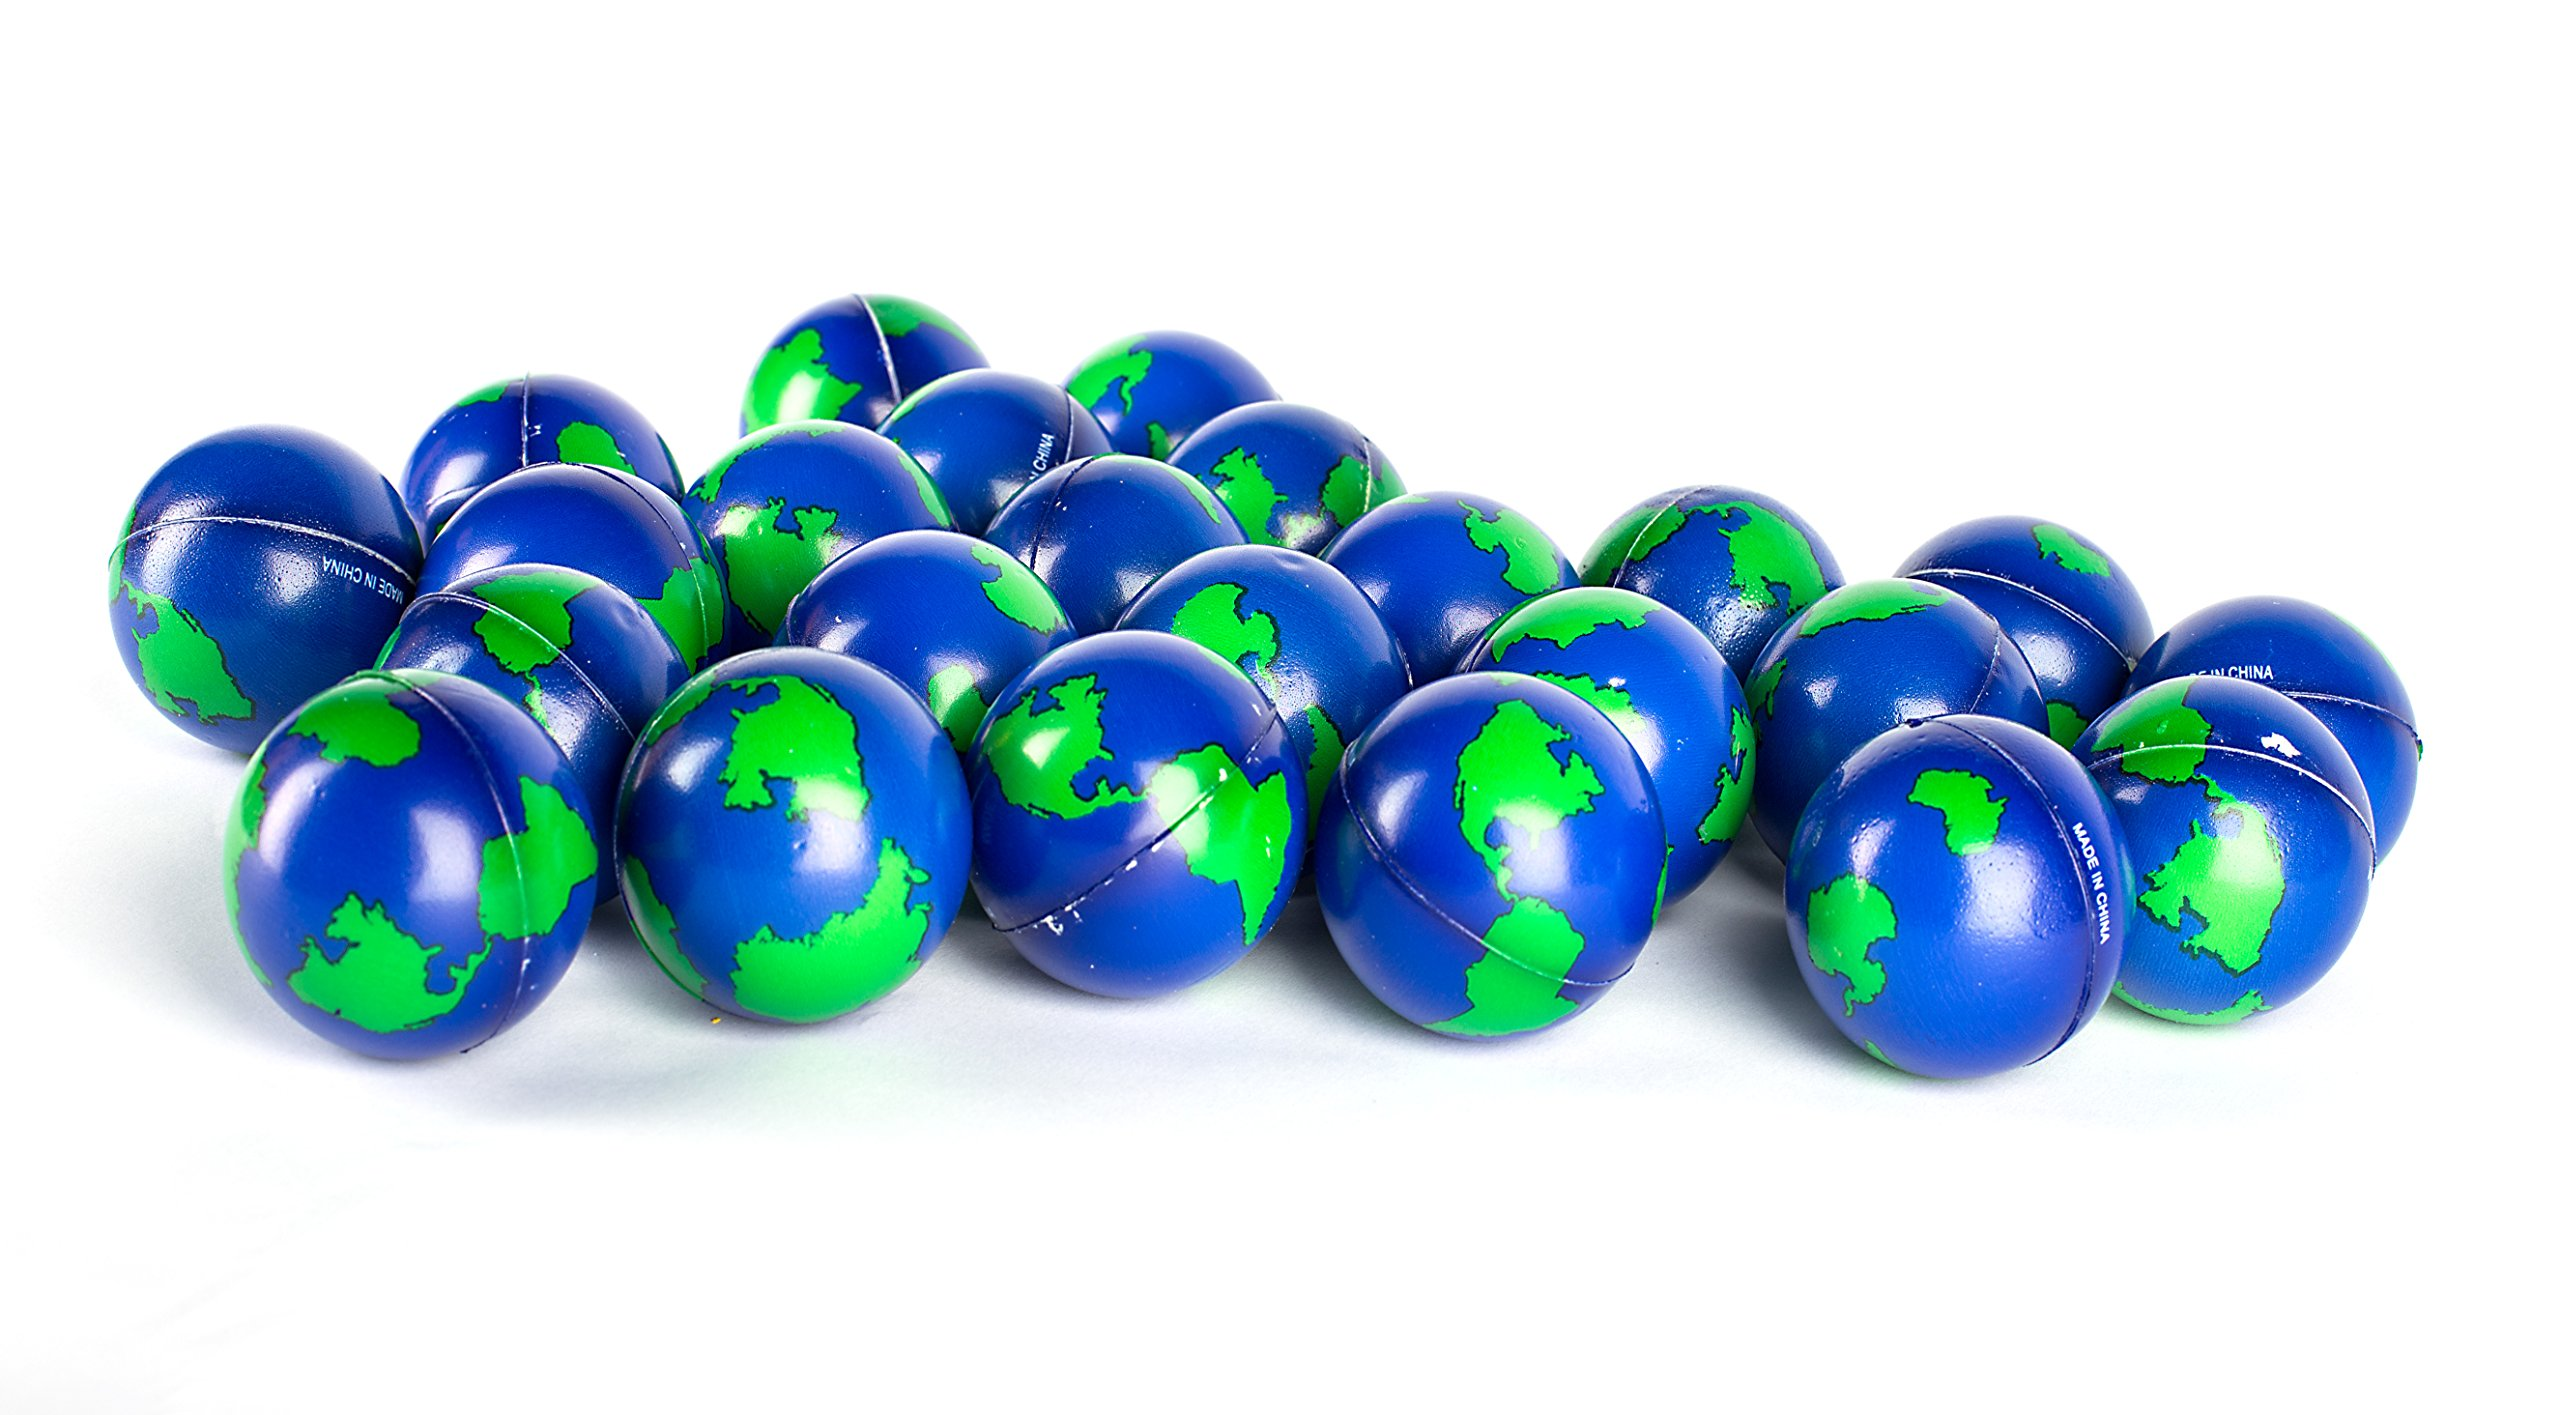 Bulk Lot of 2 Dozen World Stress Balls Earth Stress Relief Toys Therapeutic Educational Balls 24 Globe Squeeze 2 '' Stress Balls